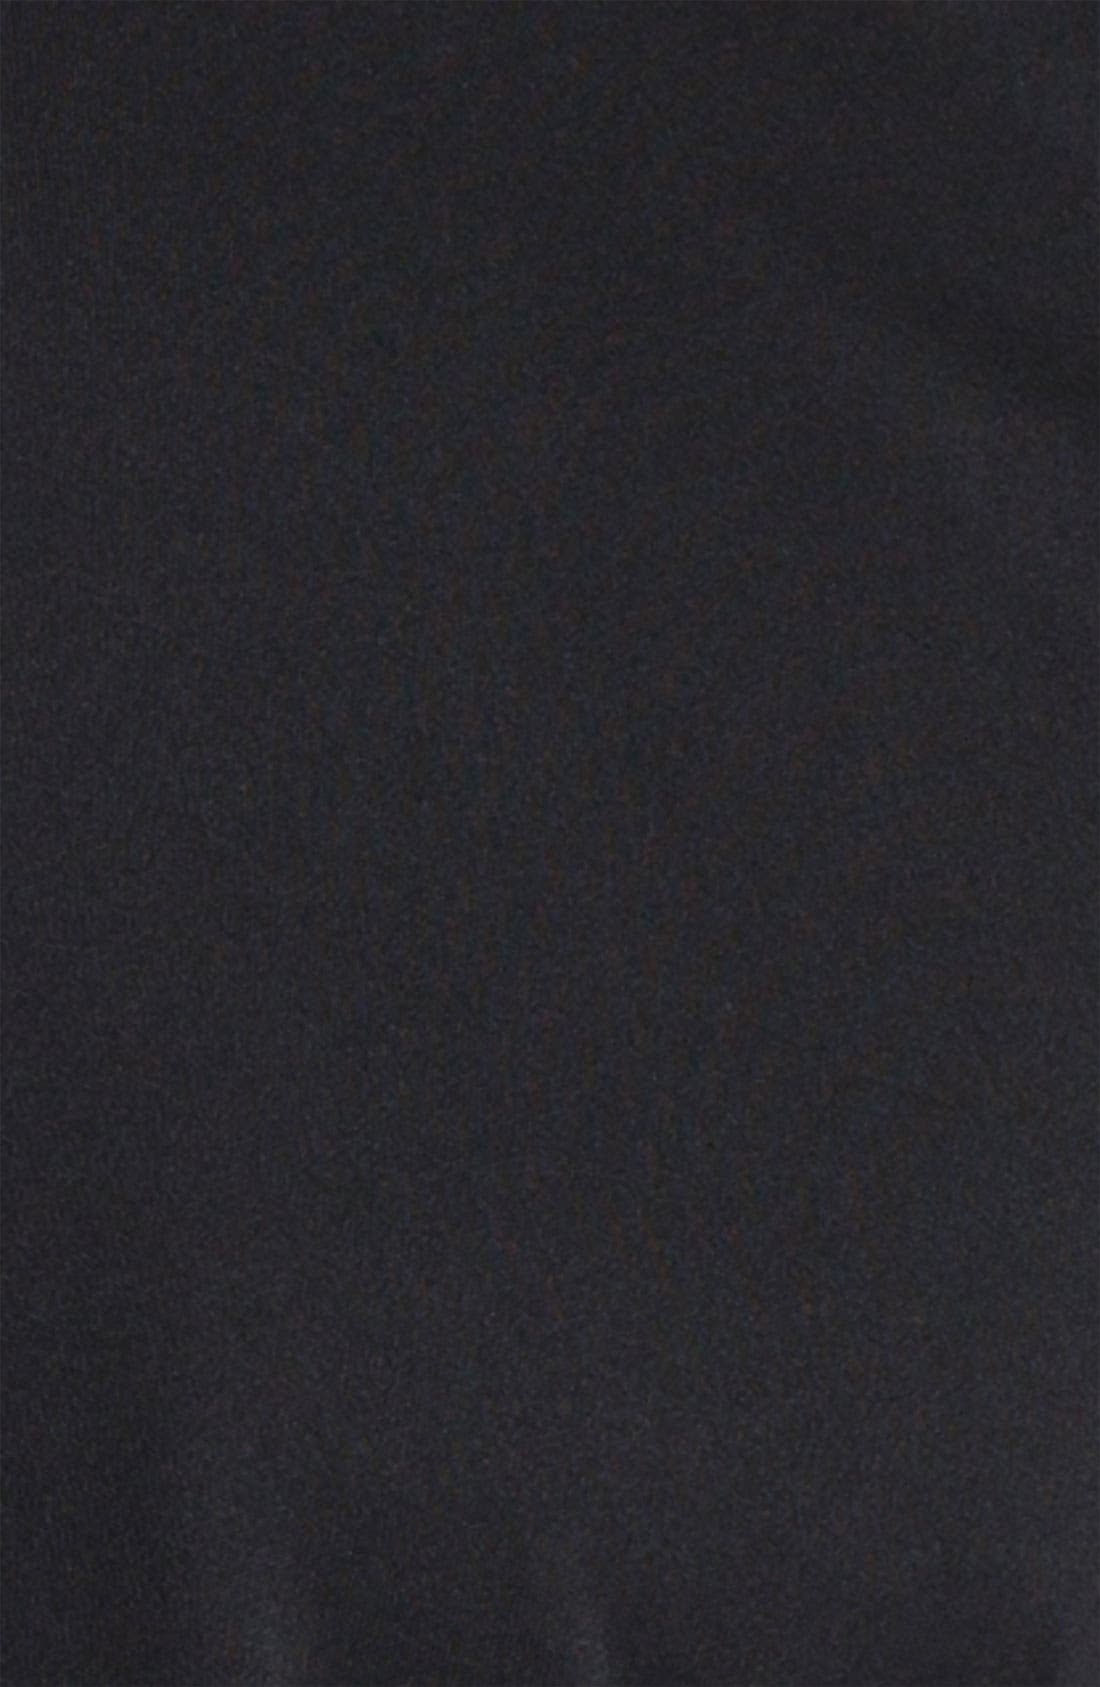 '365 Core' CLIMACOOL<sup>®</sup> T-Shirt,                             Alternate thumbnail 3, color,                             001